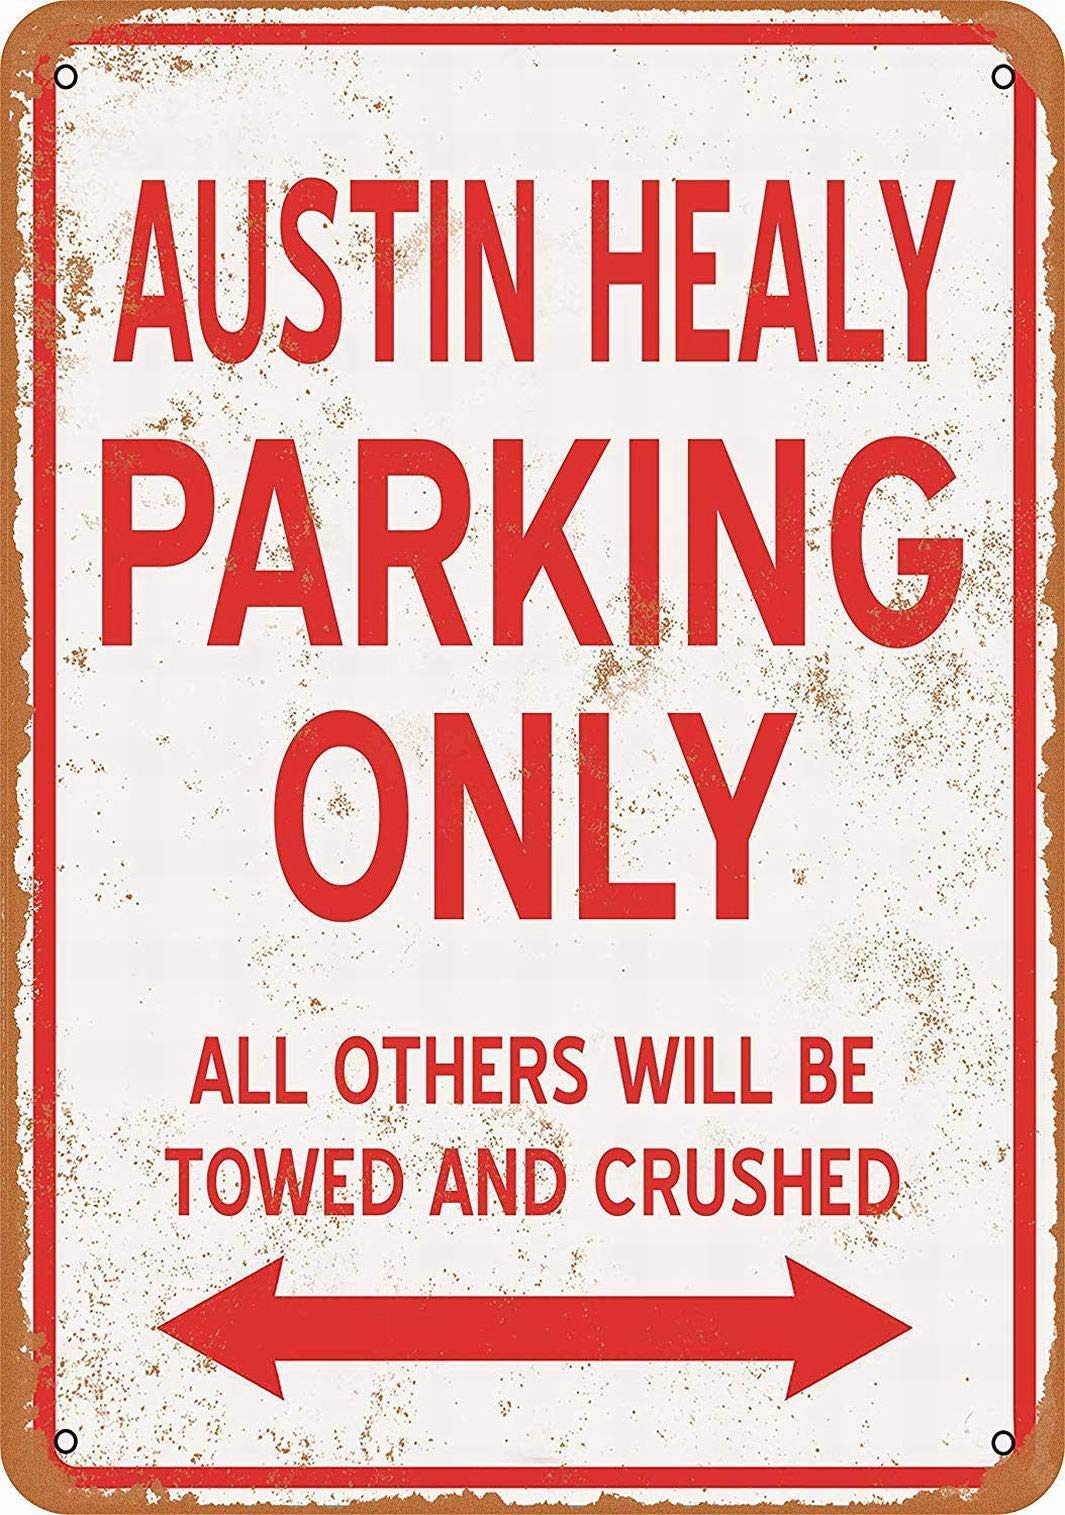 Outdoor Decorative Aluminum Signs 16x12,Austin Healy Parking Only,Vintage Metal Tin Garage Office Club Bar Wall Art Deco Cafe Shop Home Metal Painting Tavern Decoration